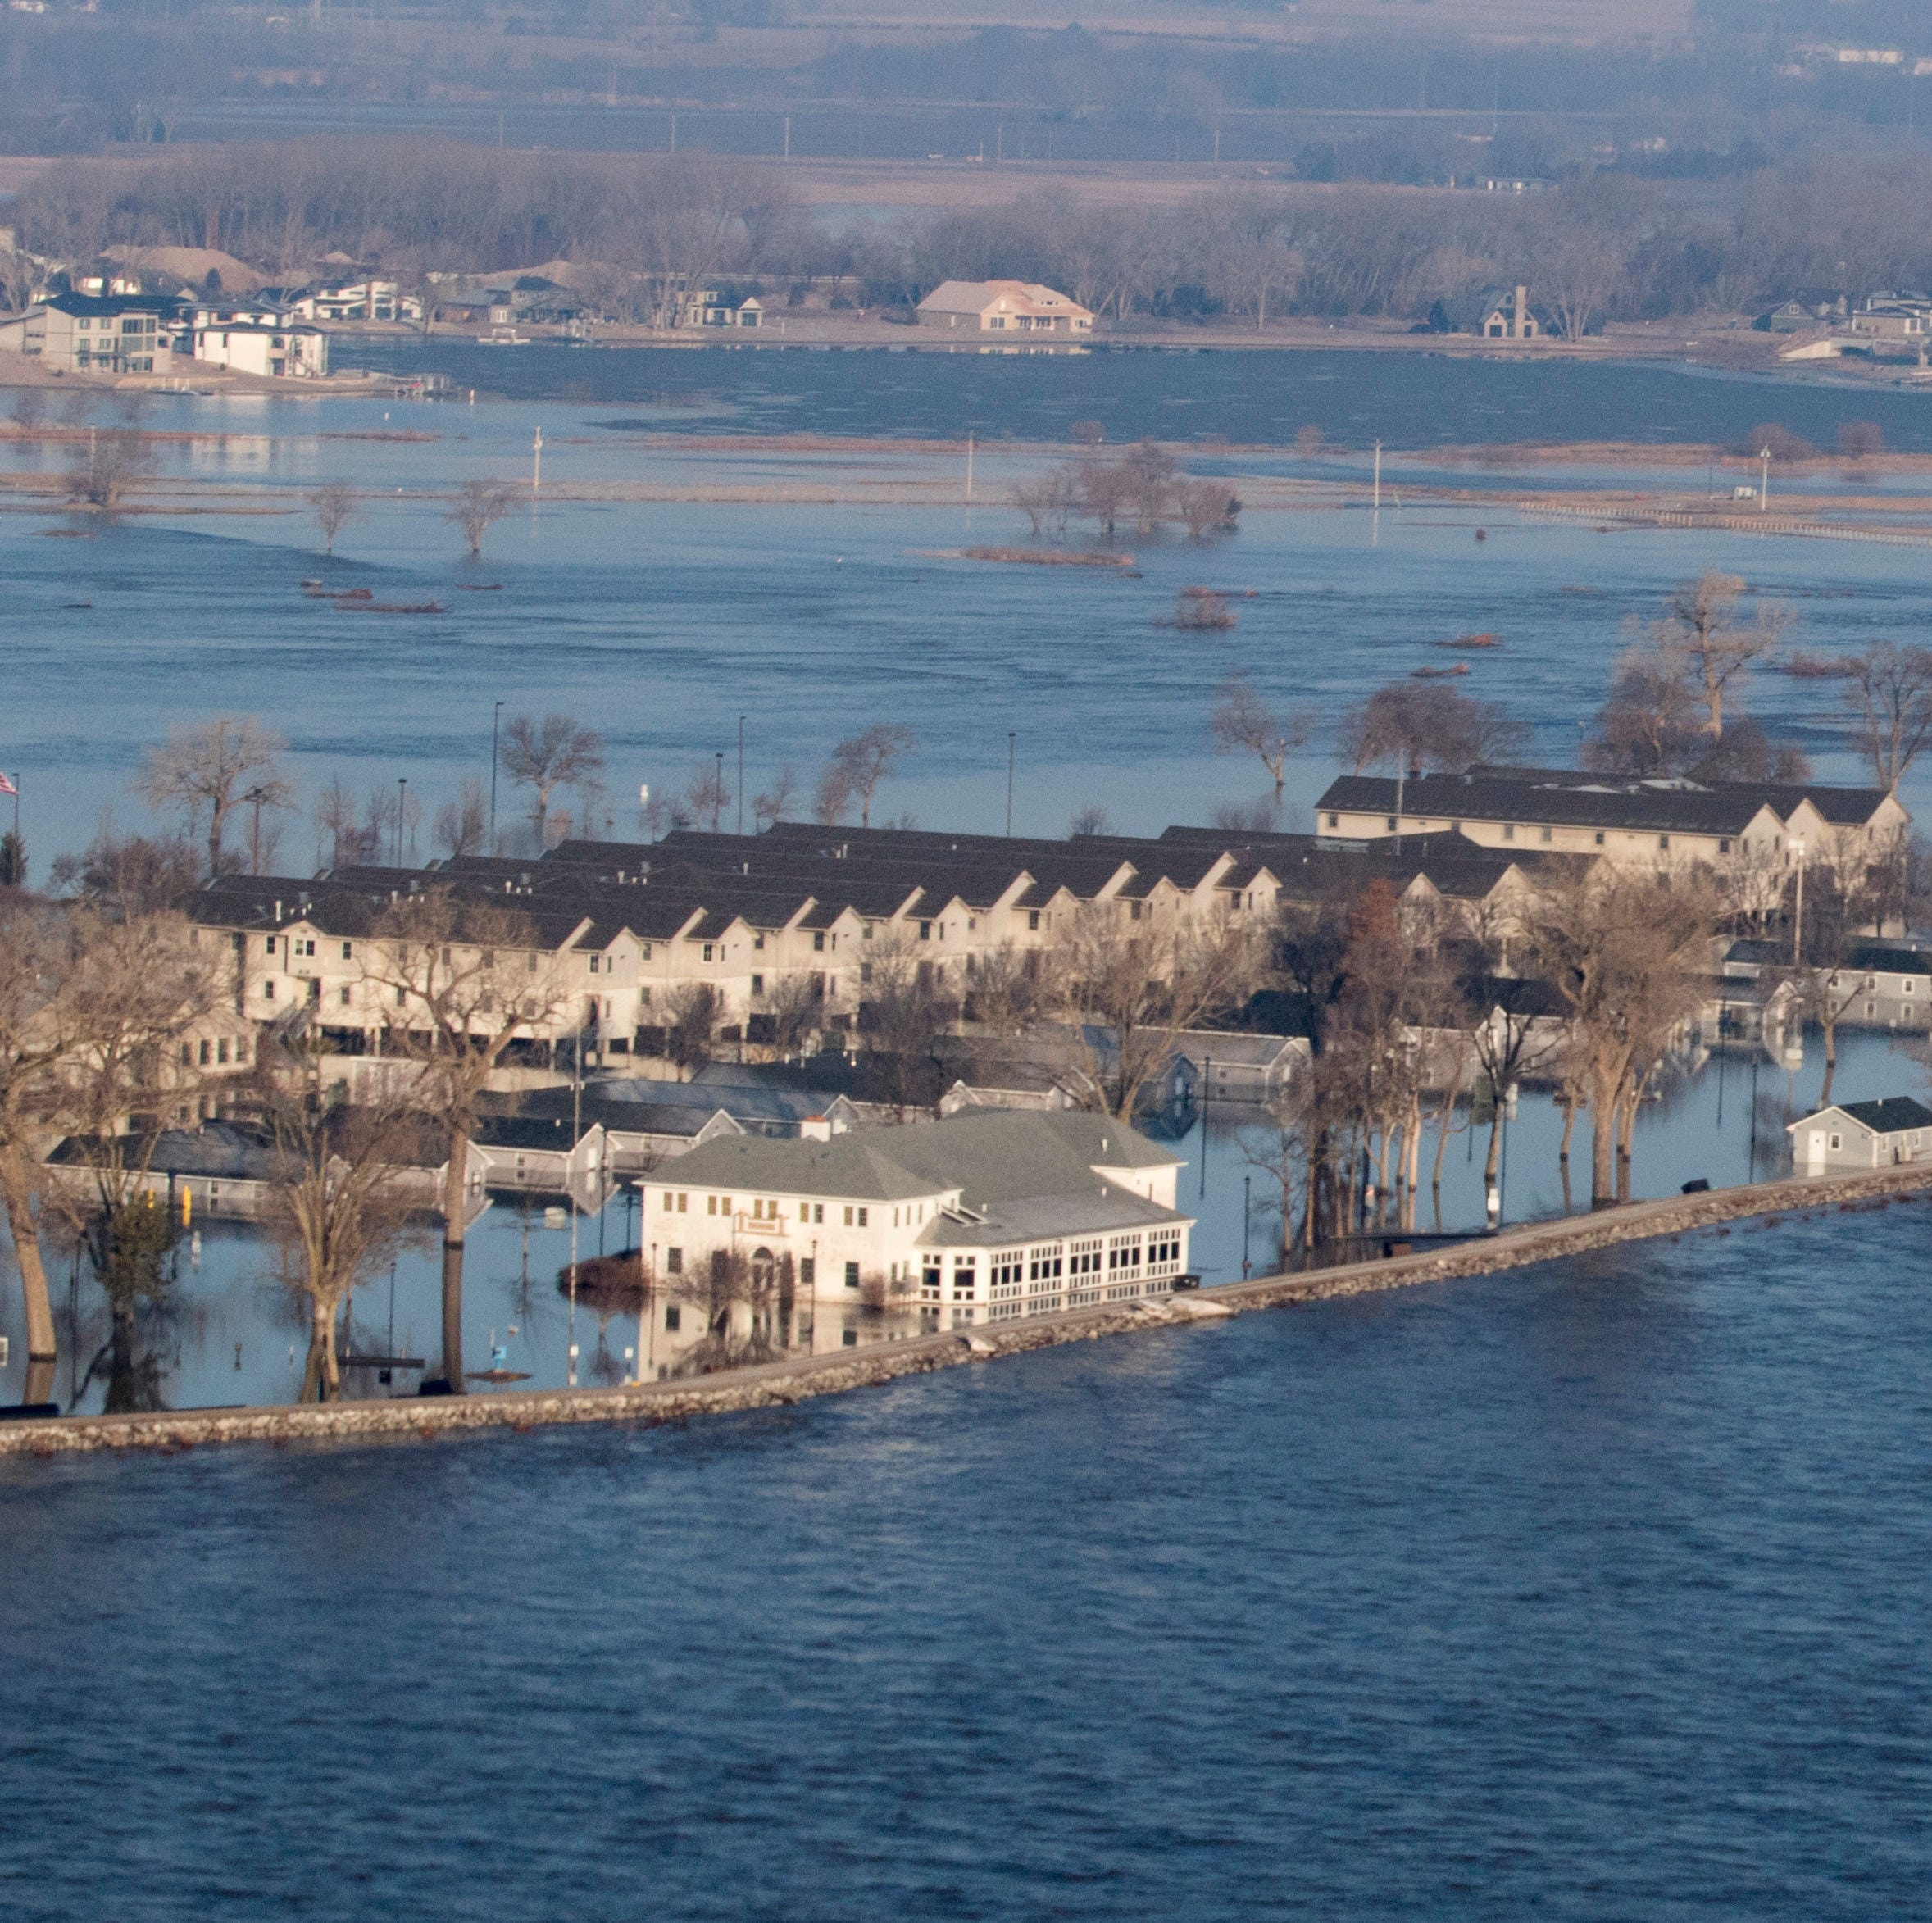 Iowa flooding 2019: Drone flyover on Wednesday, March 20